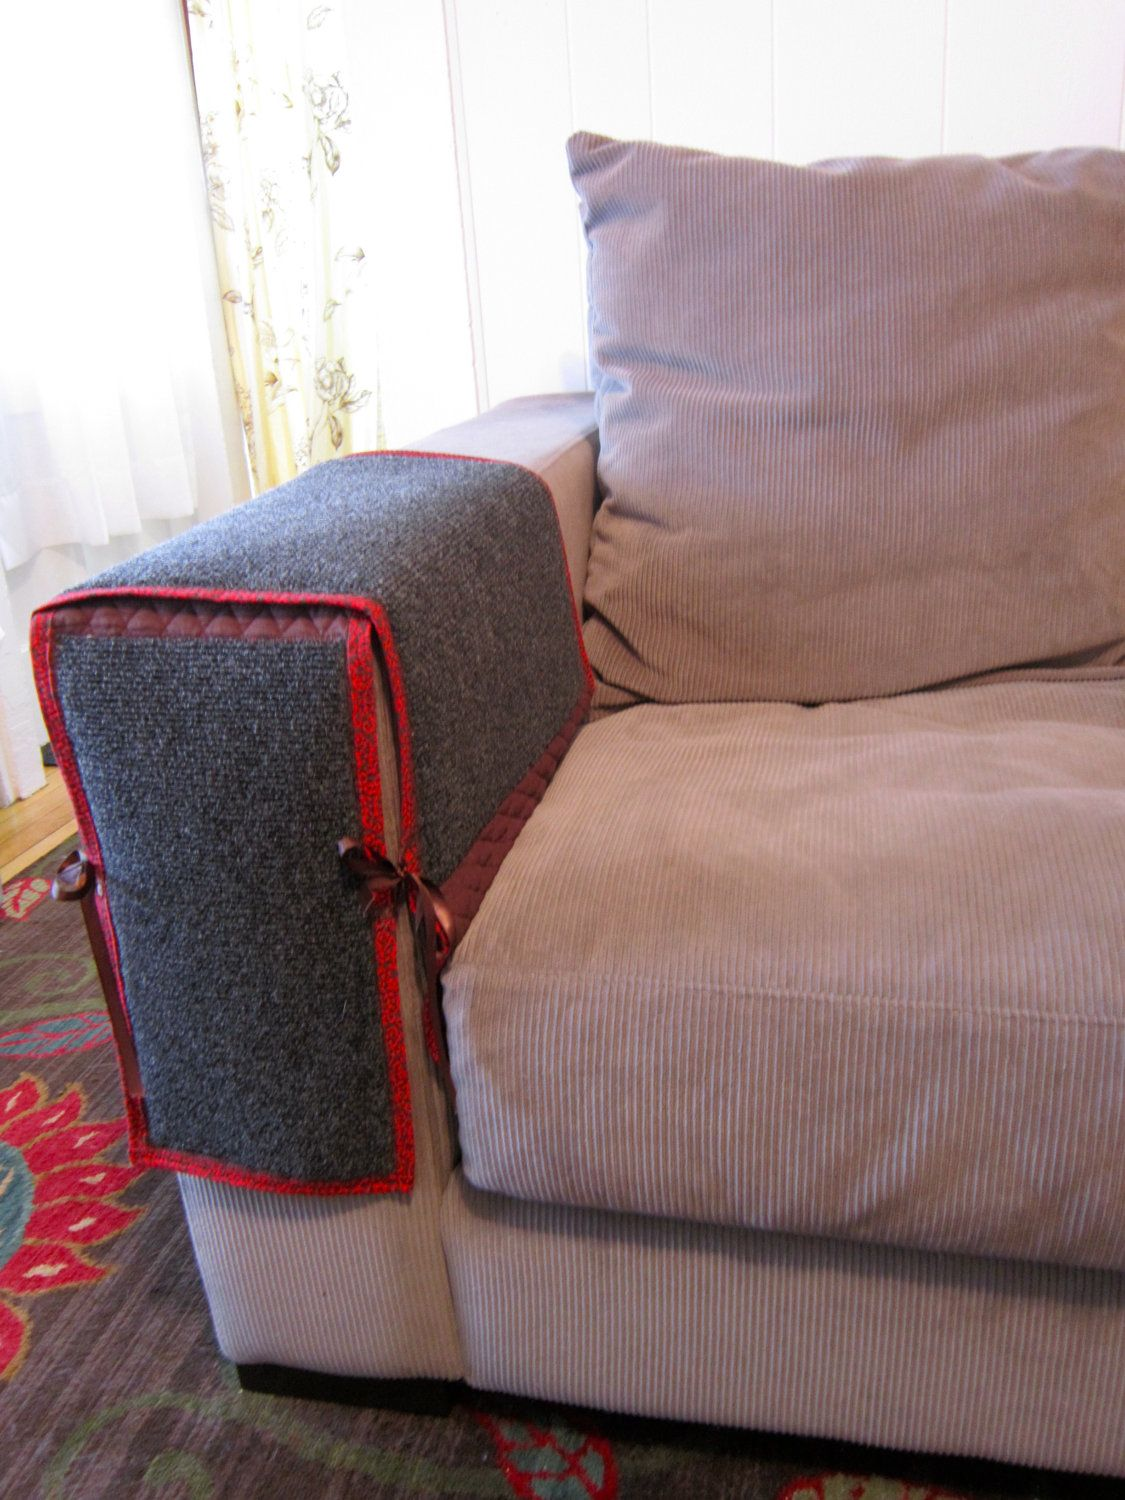 Cat Scratching Couch Or Chair Arm Protection Via Etsy Ideas